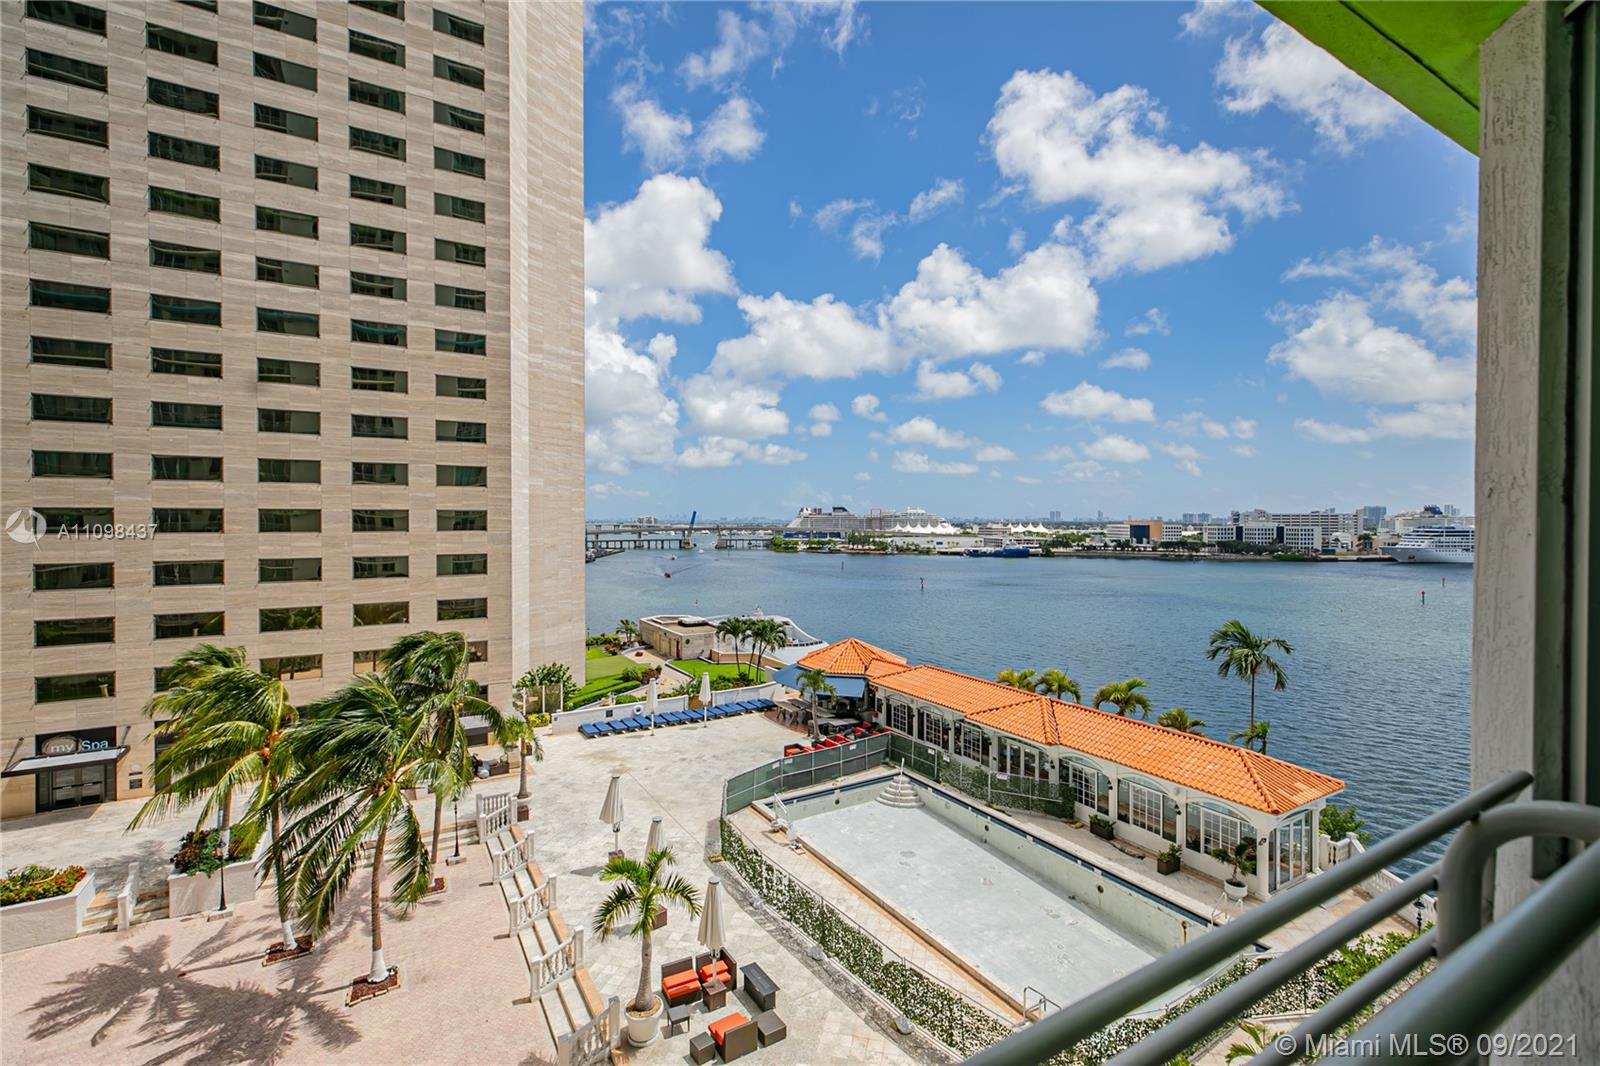 Beautiful 2bdrms 2bths condo with views of Biscayne Bay and Port of Miami. Condo includes Italian kitchen cabinets and marble bath. Bldg amenities incl: 2 swimming pools, jacuzzi, 2 party rooms, sundeck, sauna, 2 fitness centers, convenience store, and 24 hrs security, valet, and concierge. Centrally located within minutes to SoBe, Grove, Gables, and Airport. Sales office in bldg.